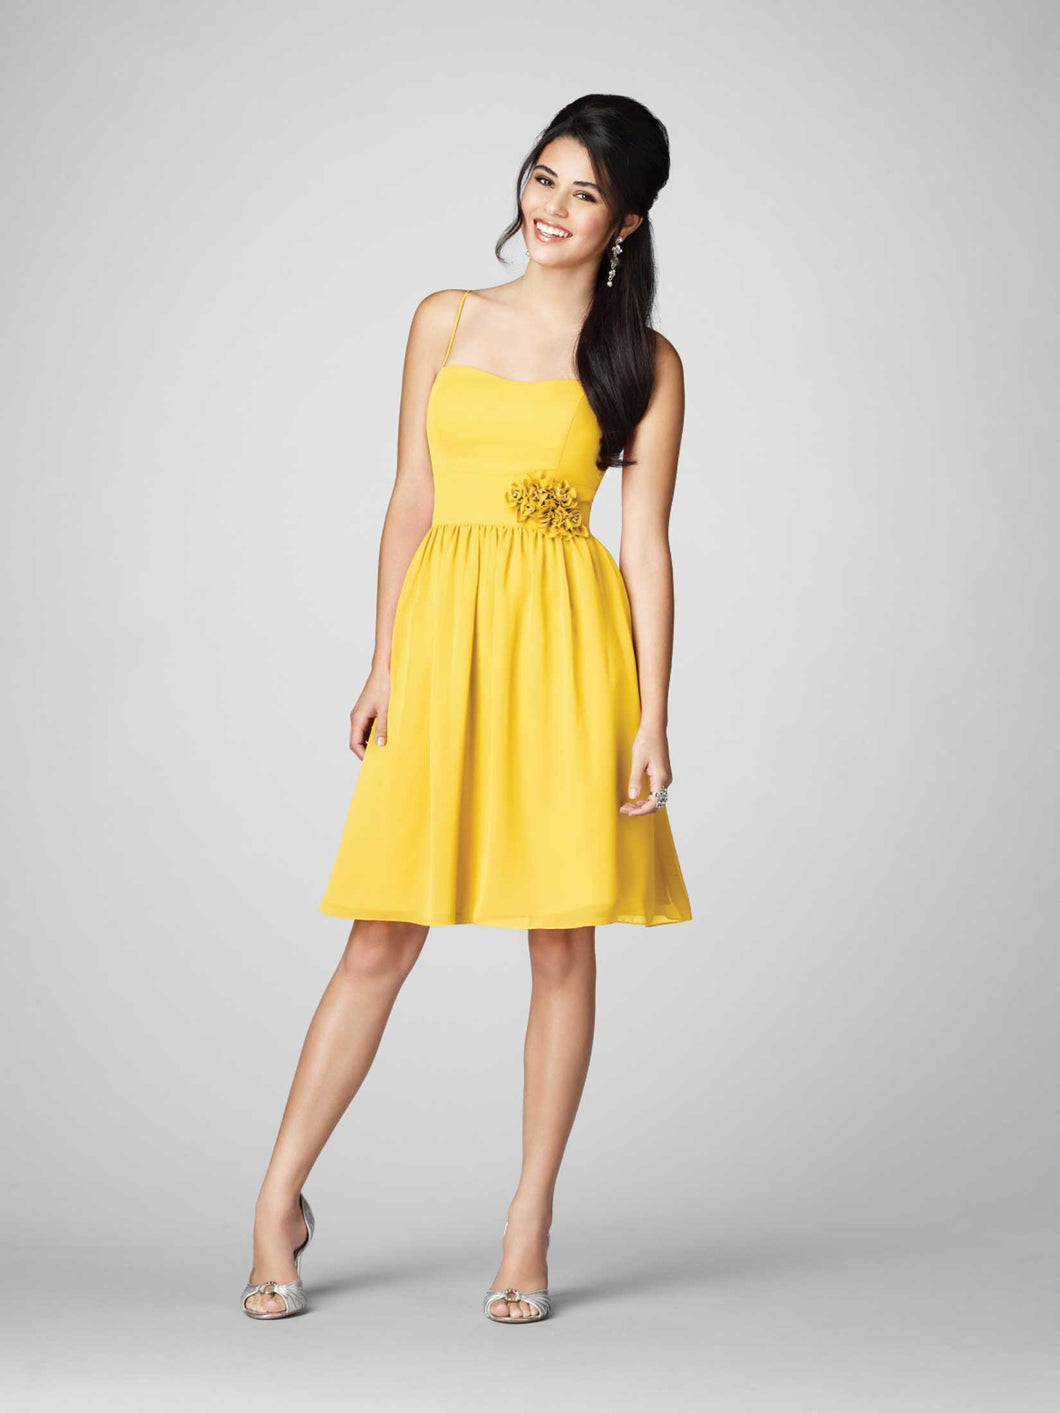 Alfred Angelo 7206 - Size 8 Canary - Spaghetti Strap Short Dress